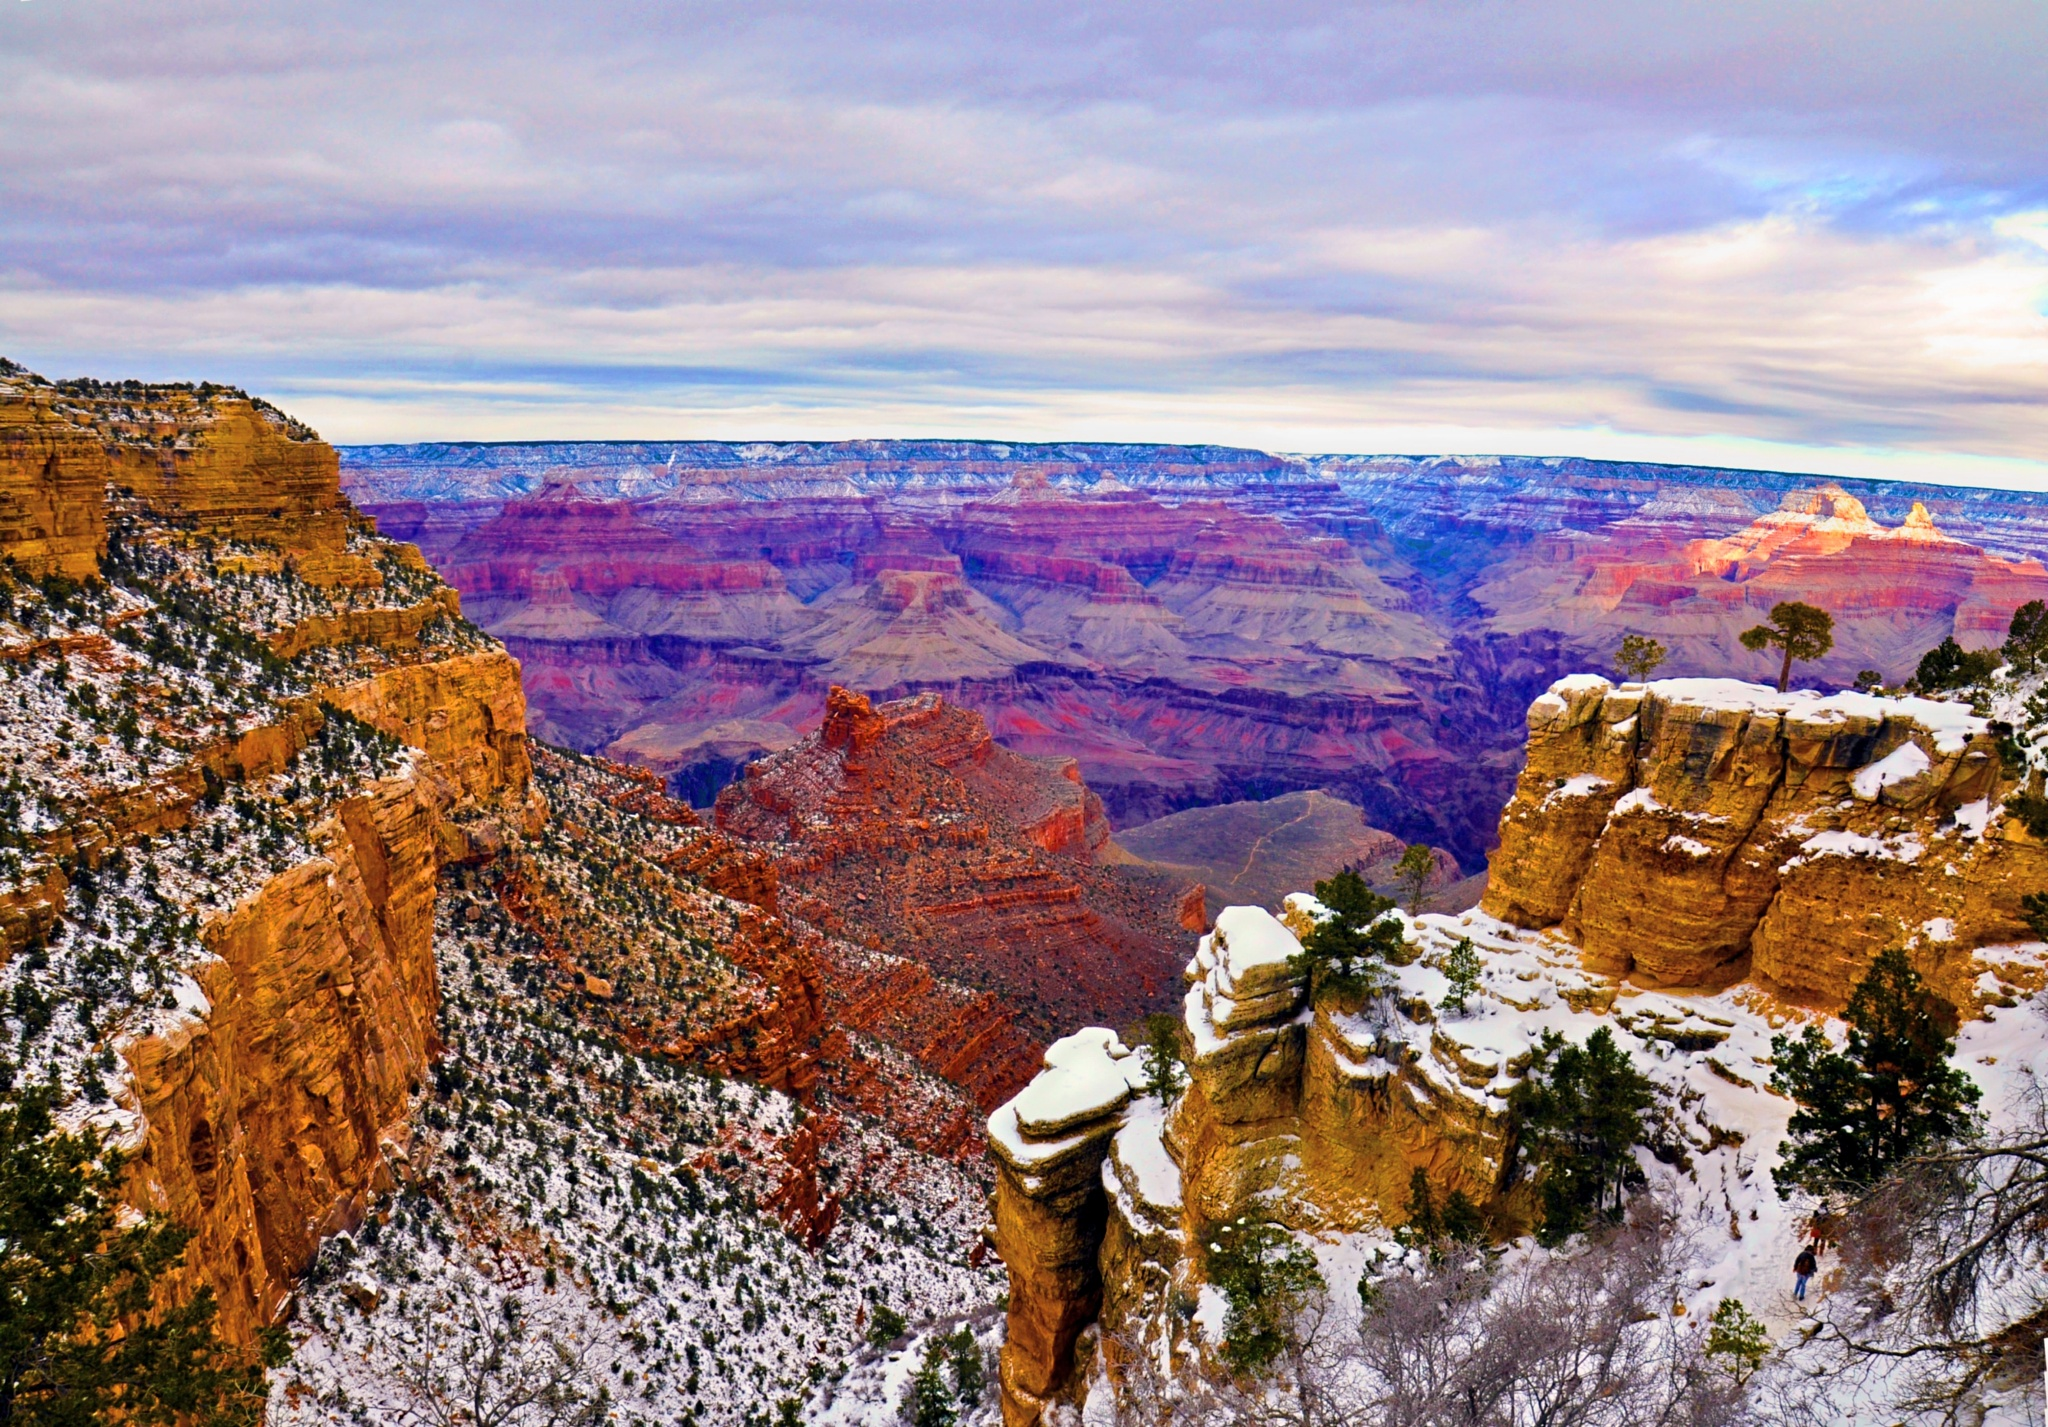 You cannot see the Grand Canyon in one view by Sadiq Ali AlQatari